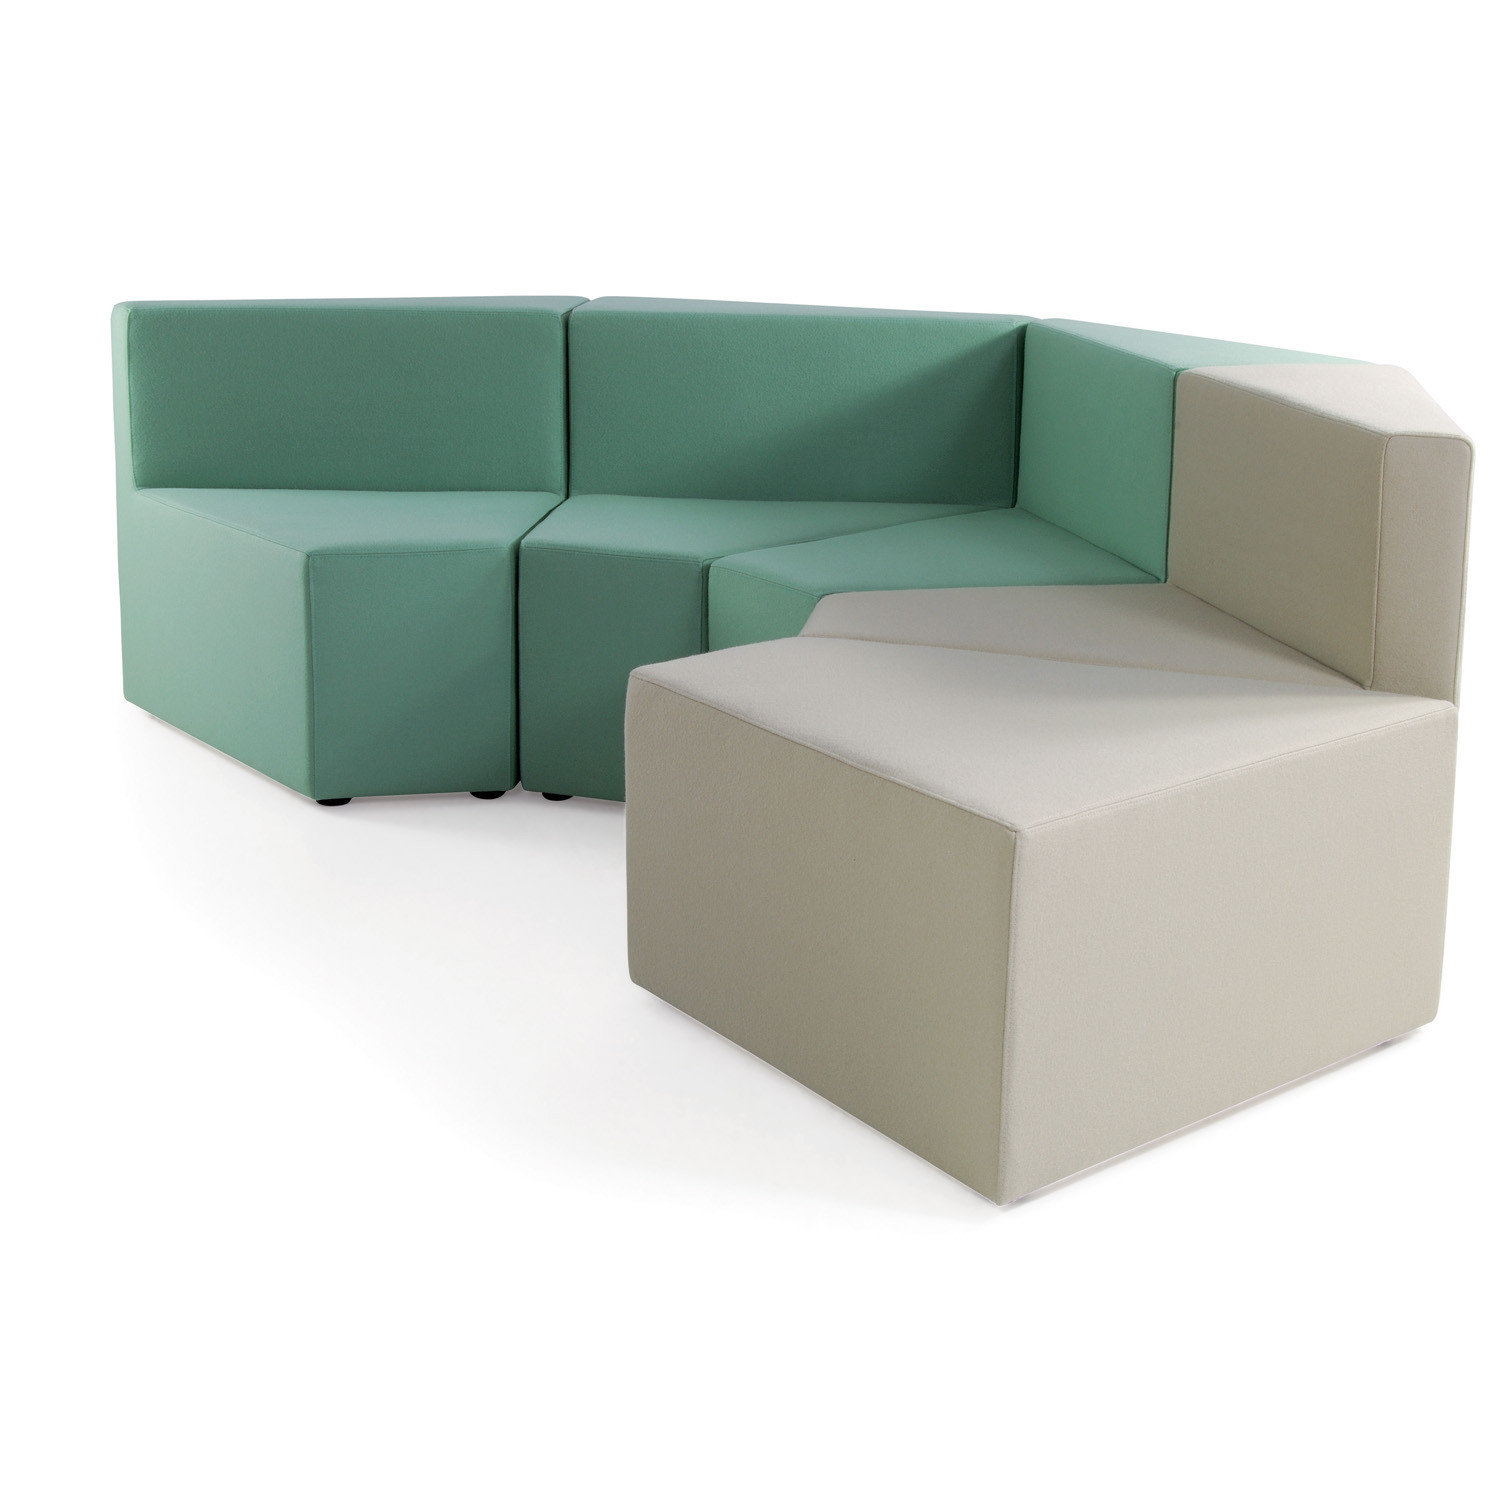 HM77 Modular Reception Seating